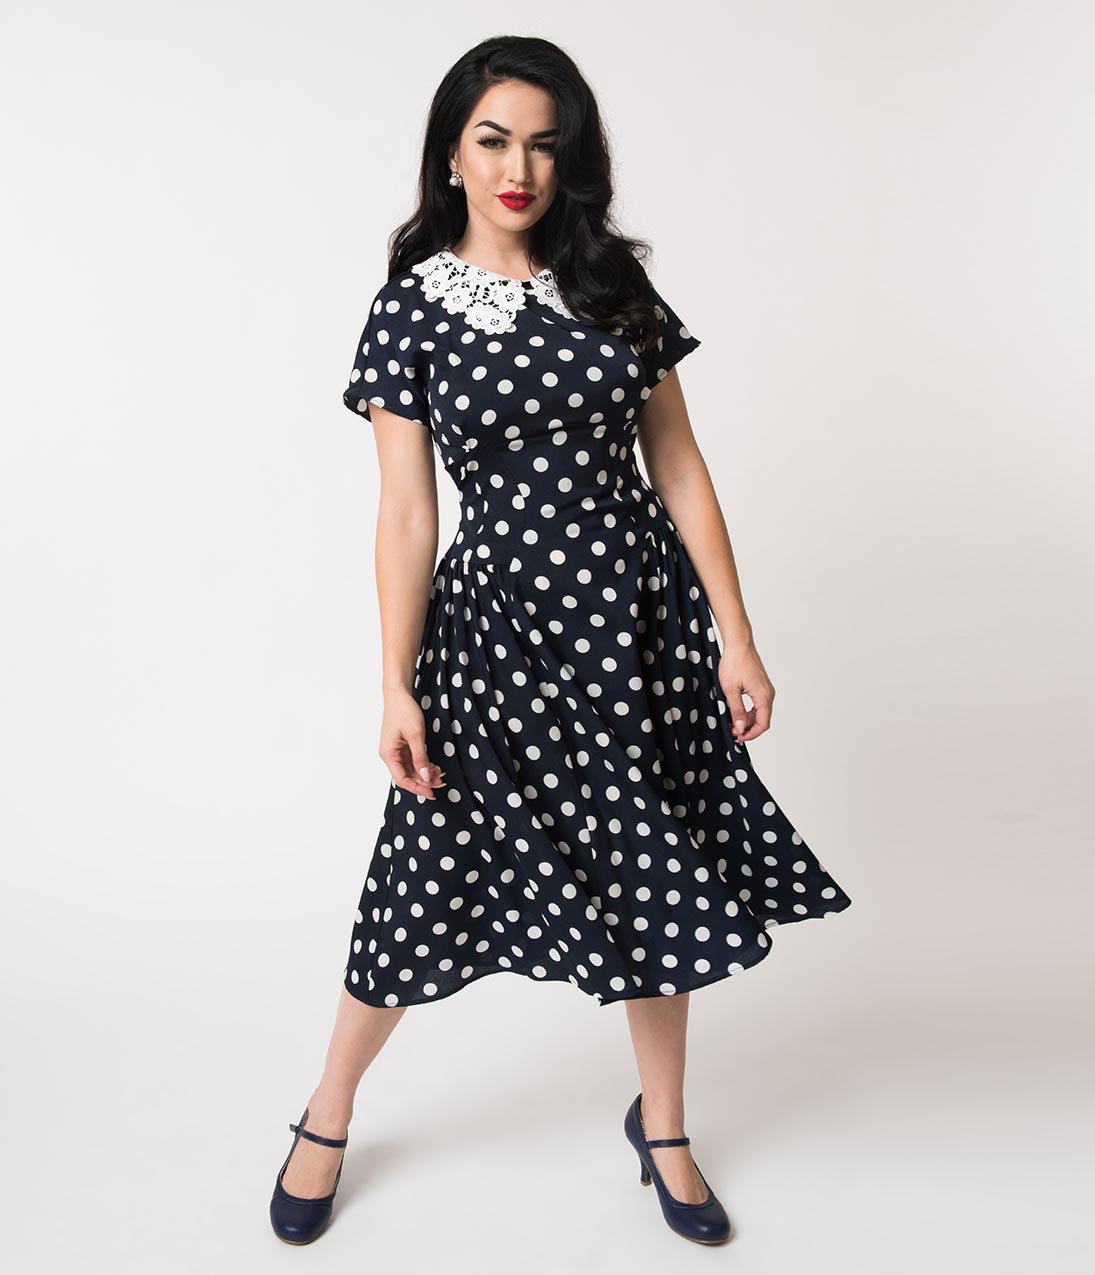 581ef0dcf08d 50 Vintage Inspired Clothing Stores Unique Vintage 1940S Navy White Polka  Dot Lace Collar Margie Dress